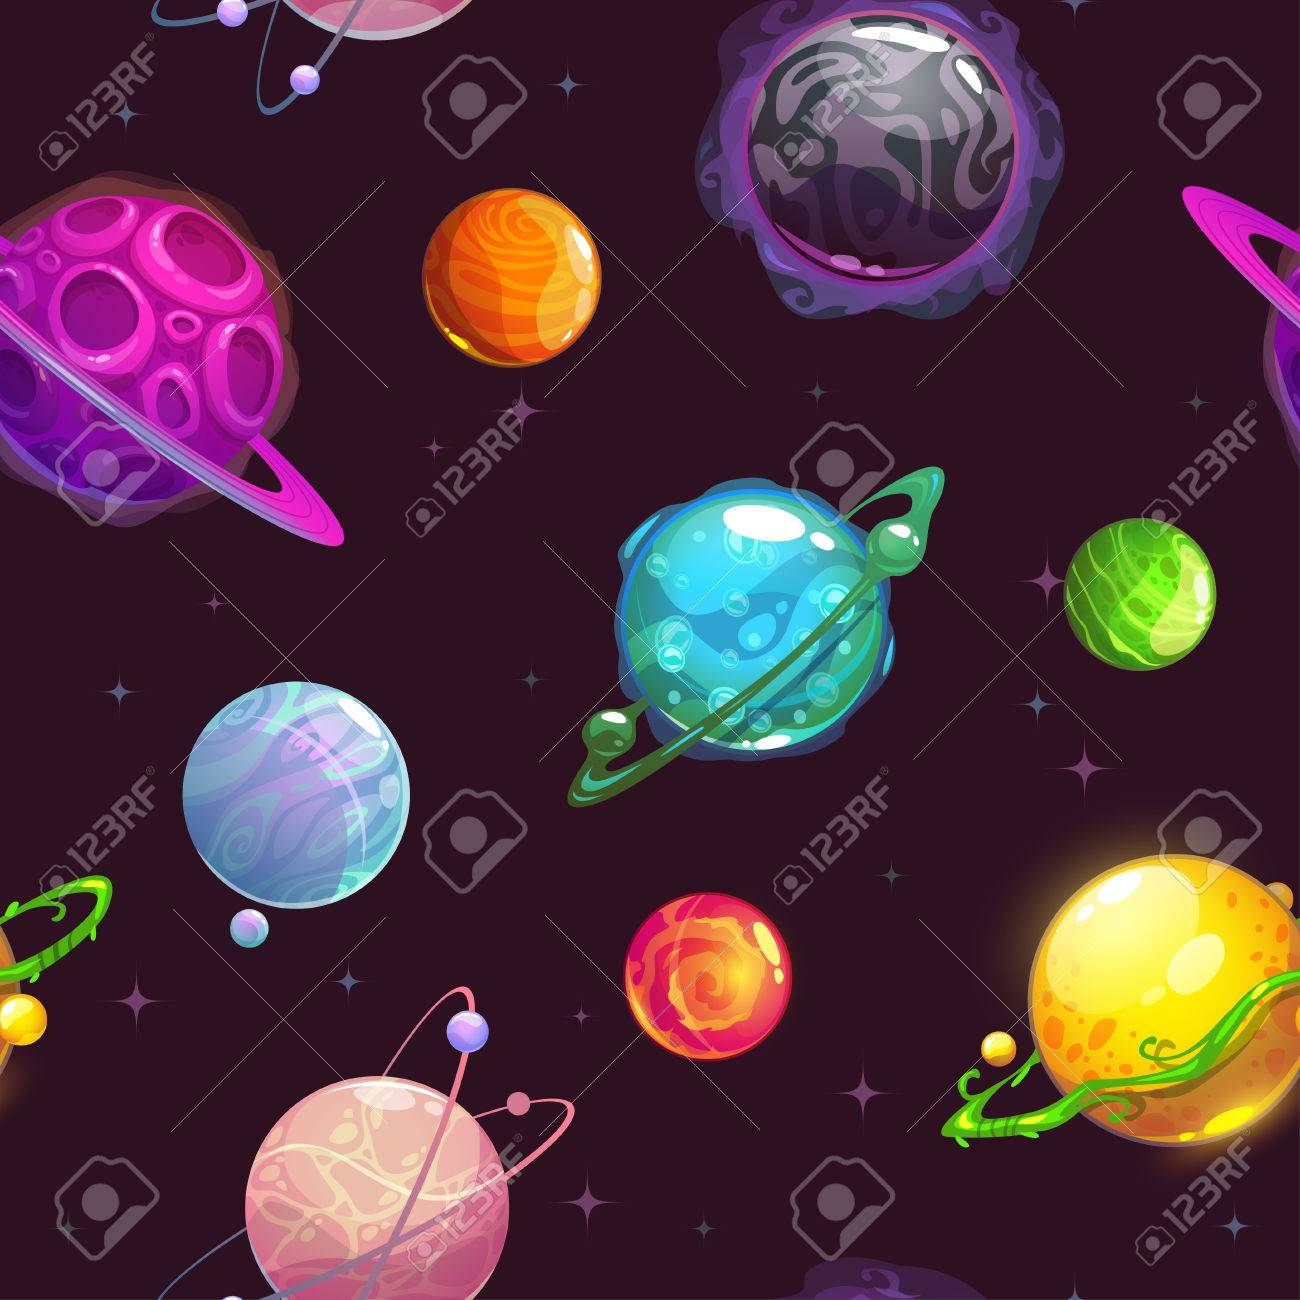 Seamless Pattern With Fantasy Cartoon Planets On The Space 1300x1300